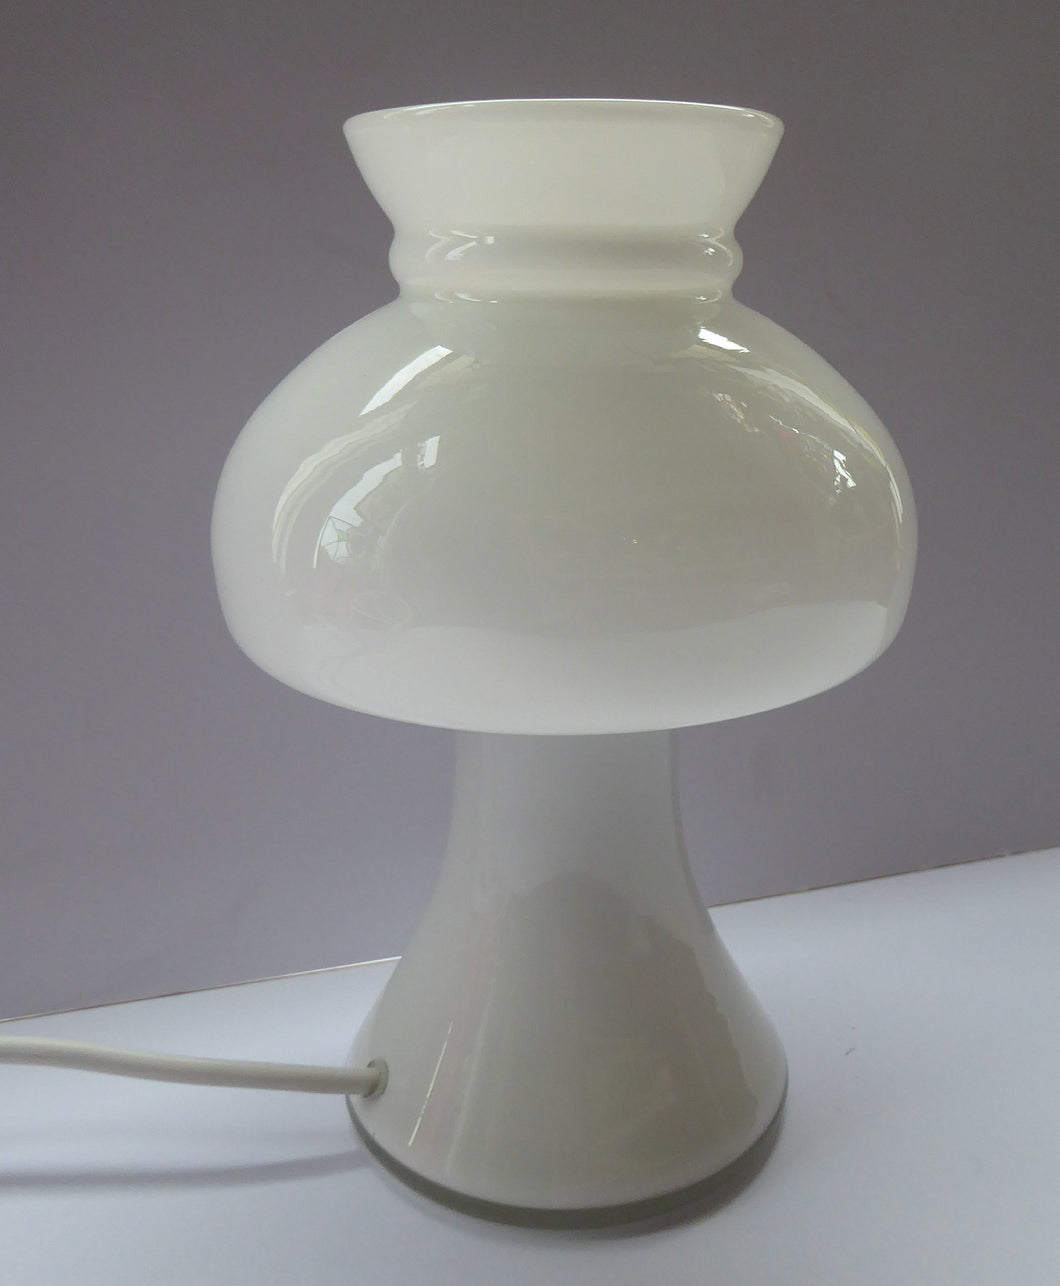 1970s HOLMEGAARD Glass Vintage Table Lamp. White Mushroom Shape